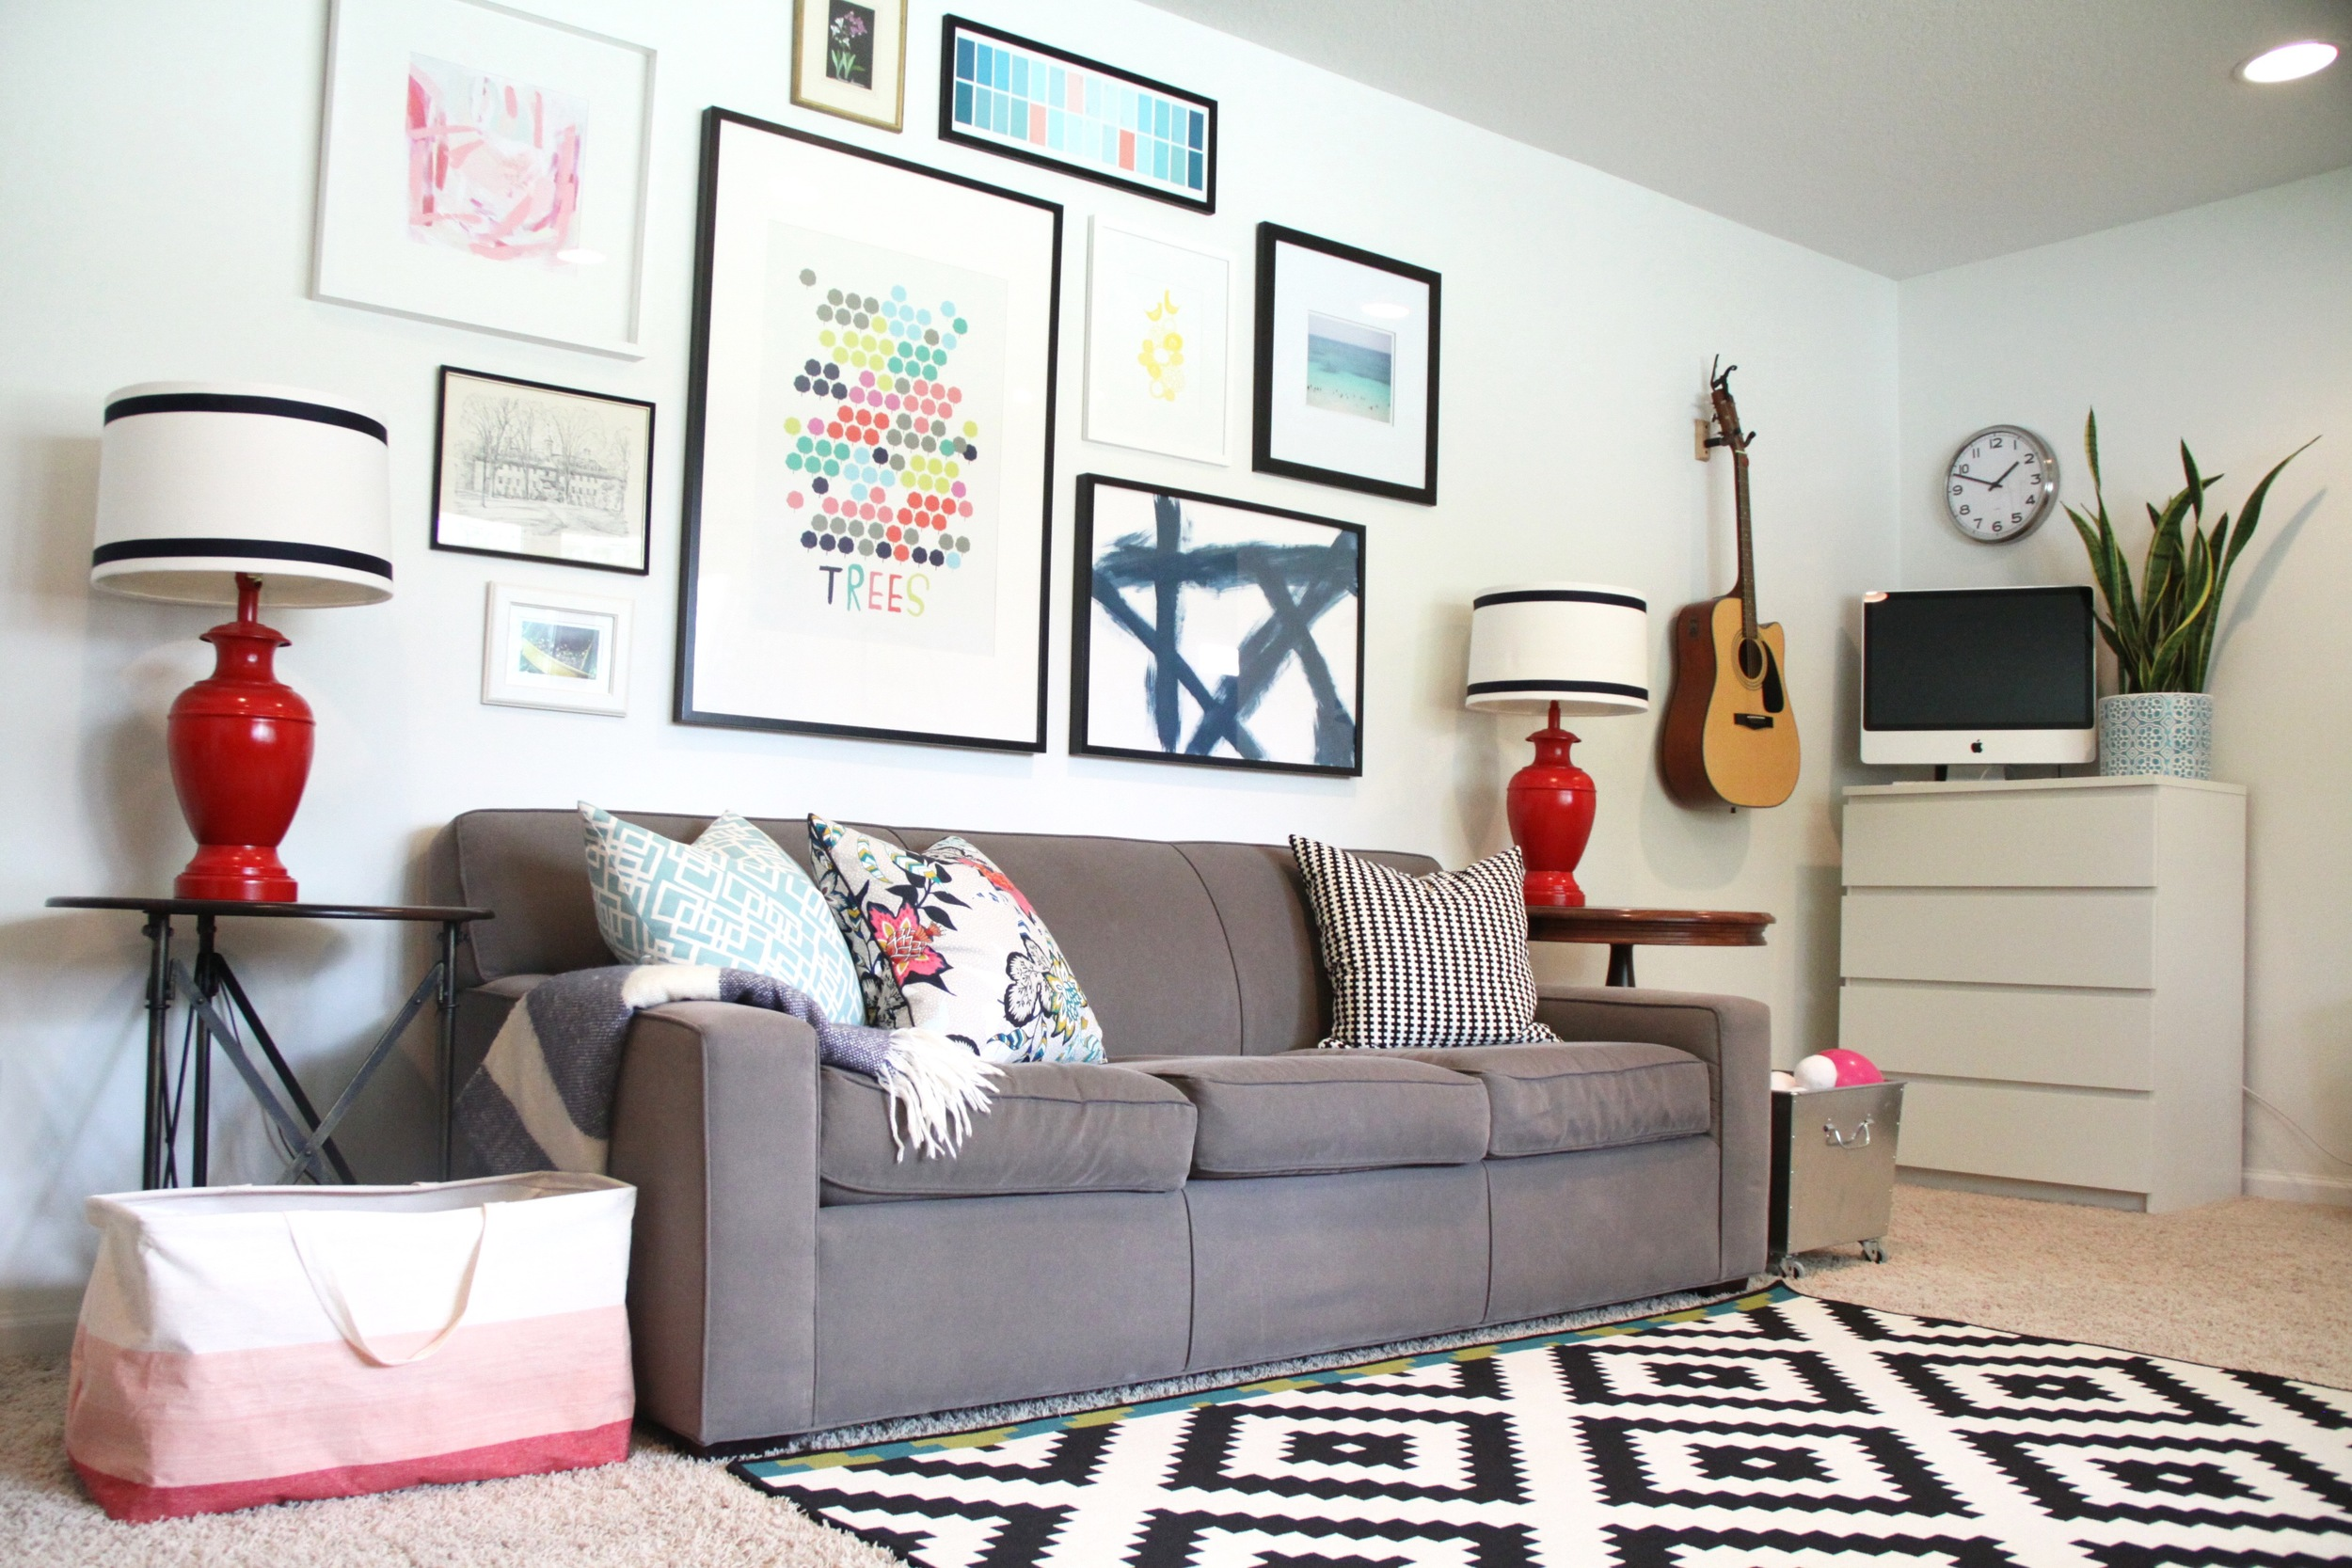 Living Room Gallery Wall with White Walls